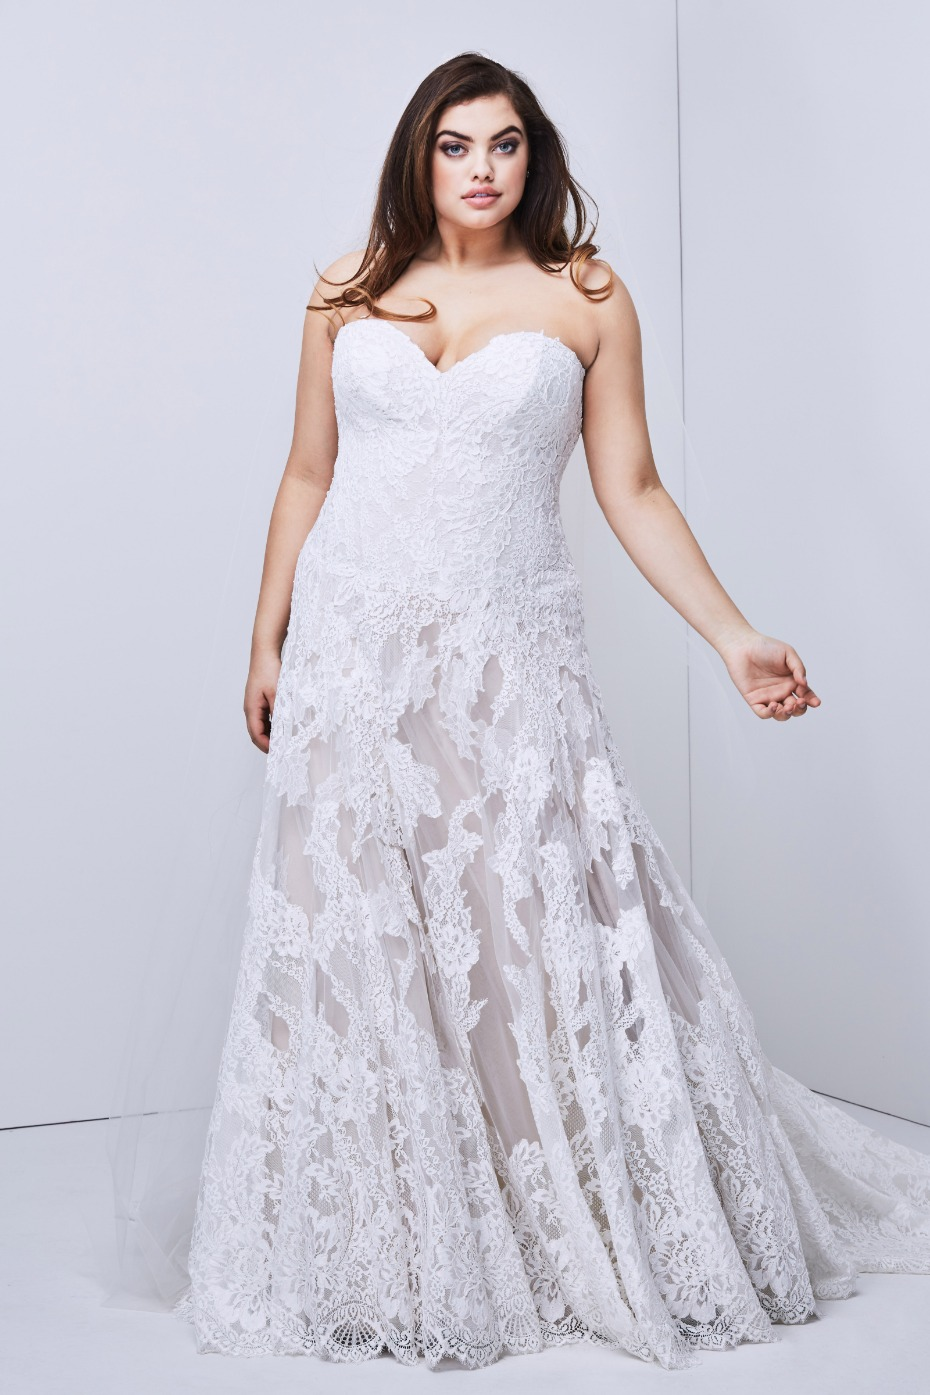 b213b9d10e 20 of Our Favorite Gowns for Girls With Curves